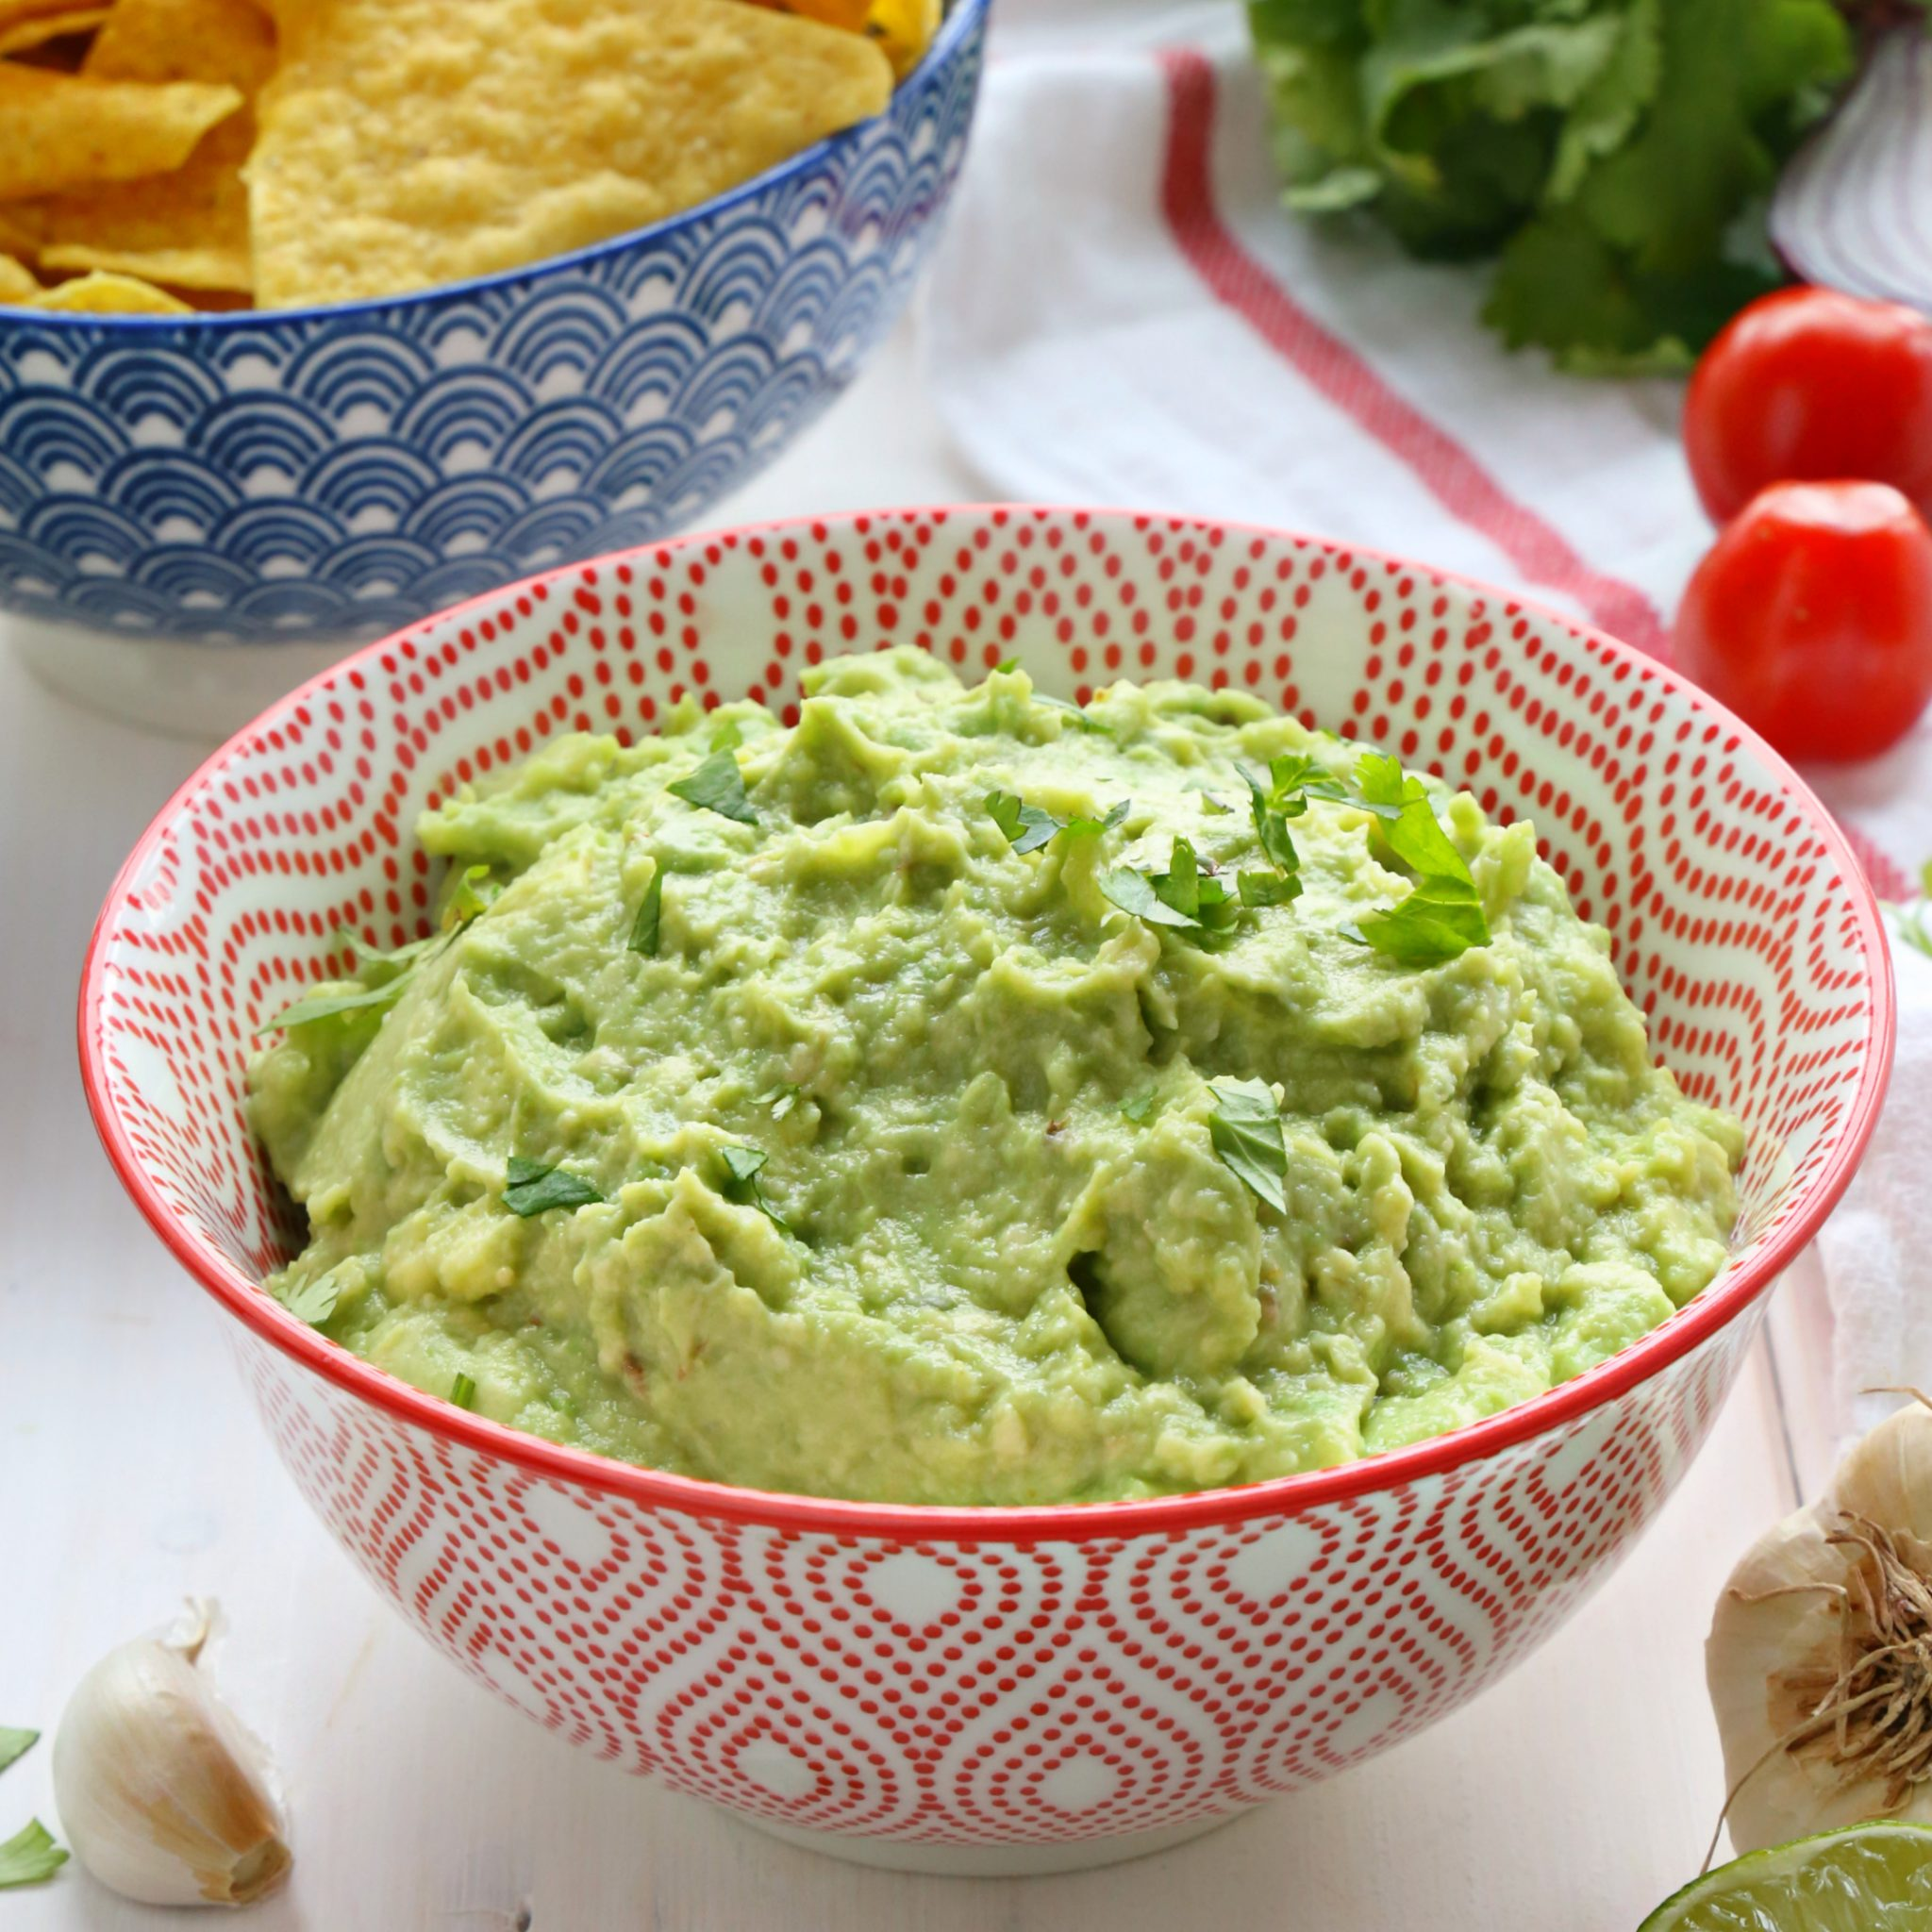 Best Ever Healthy Guacamole Easy To Make The Busy Baker